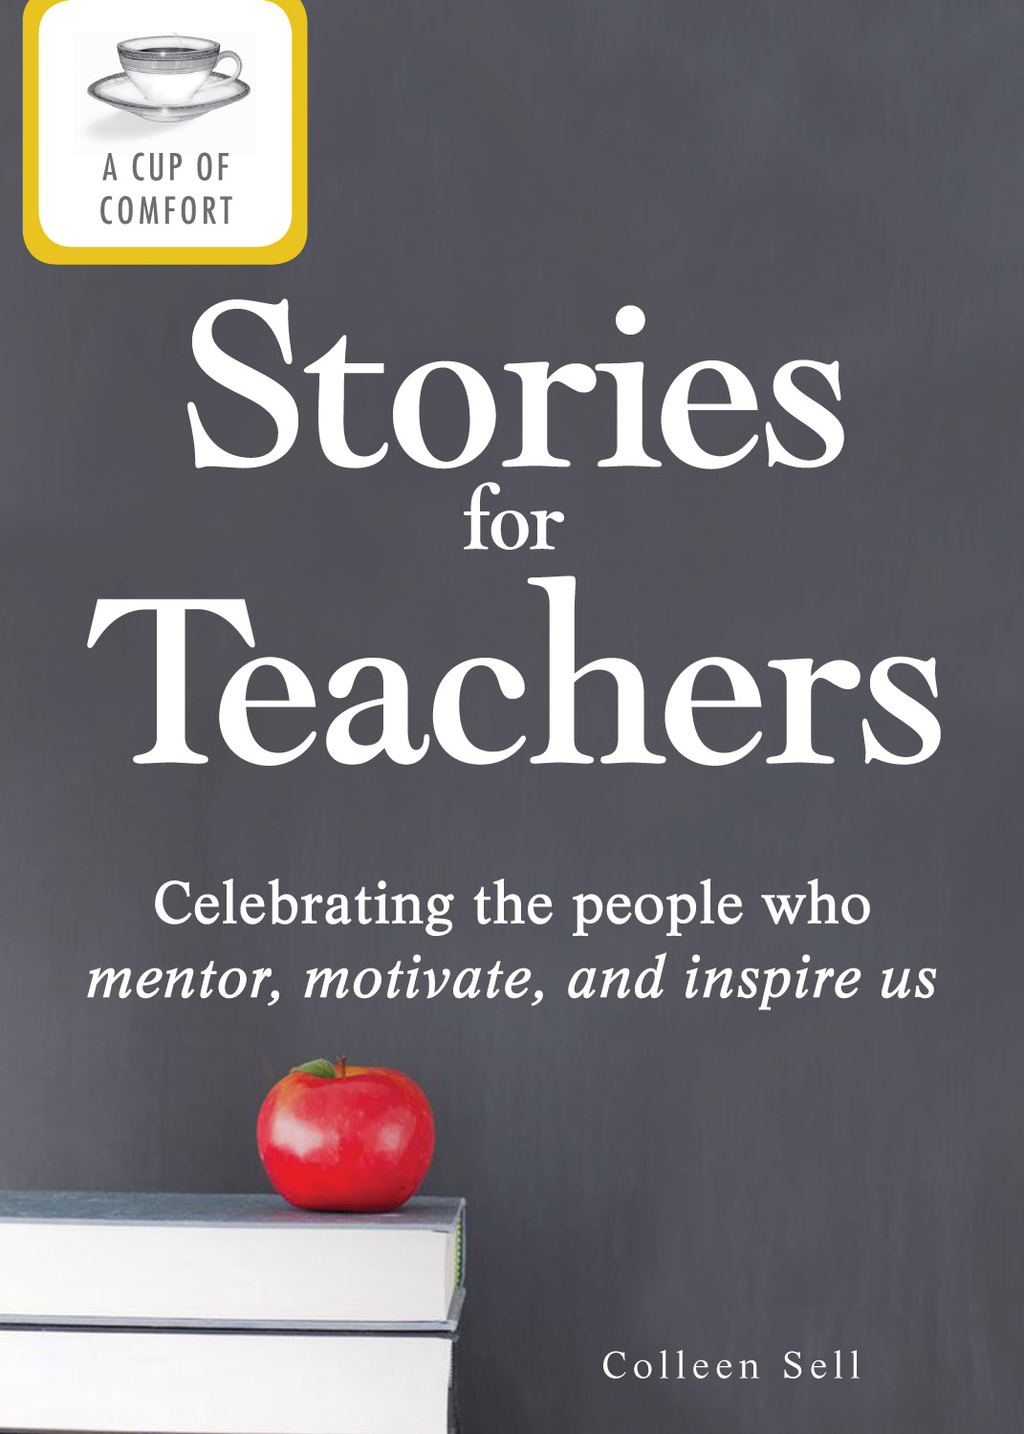 A Cup of Comfort Stories for Teachers: Celebrating the people who mentor, motivate, and inspire us By: Colleen Sell